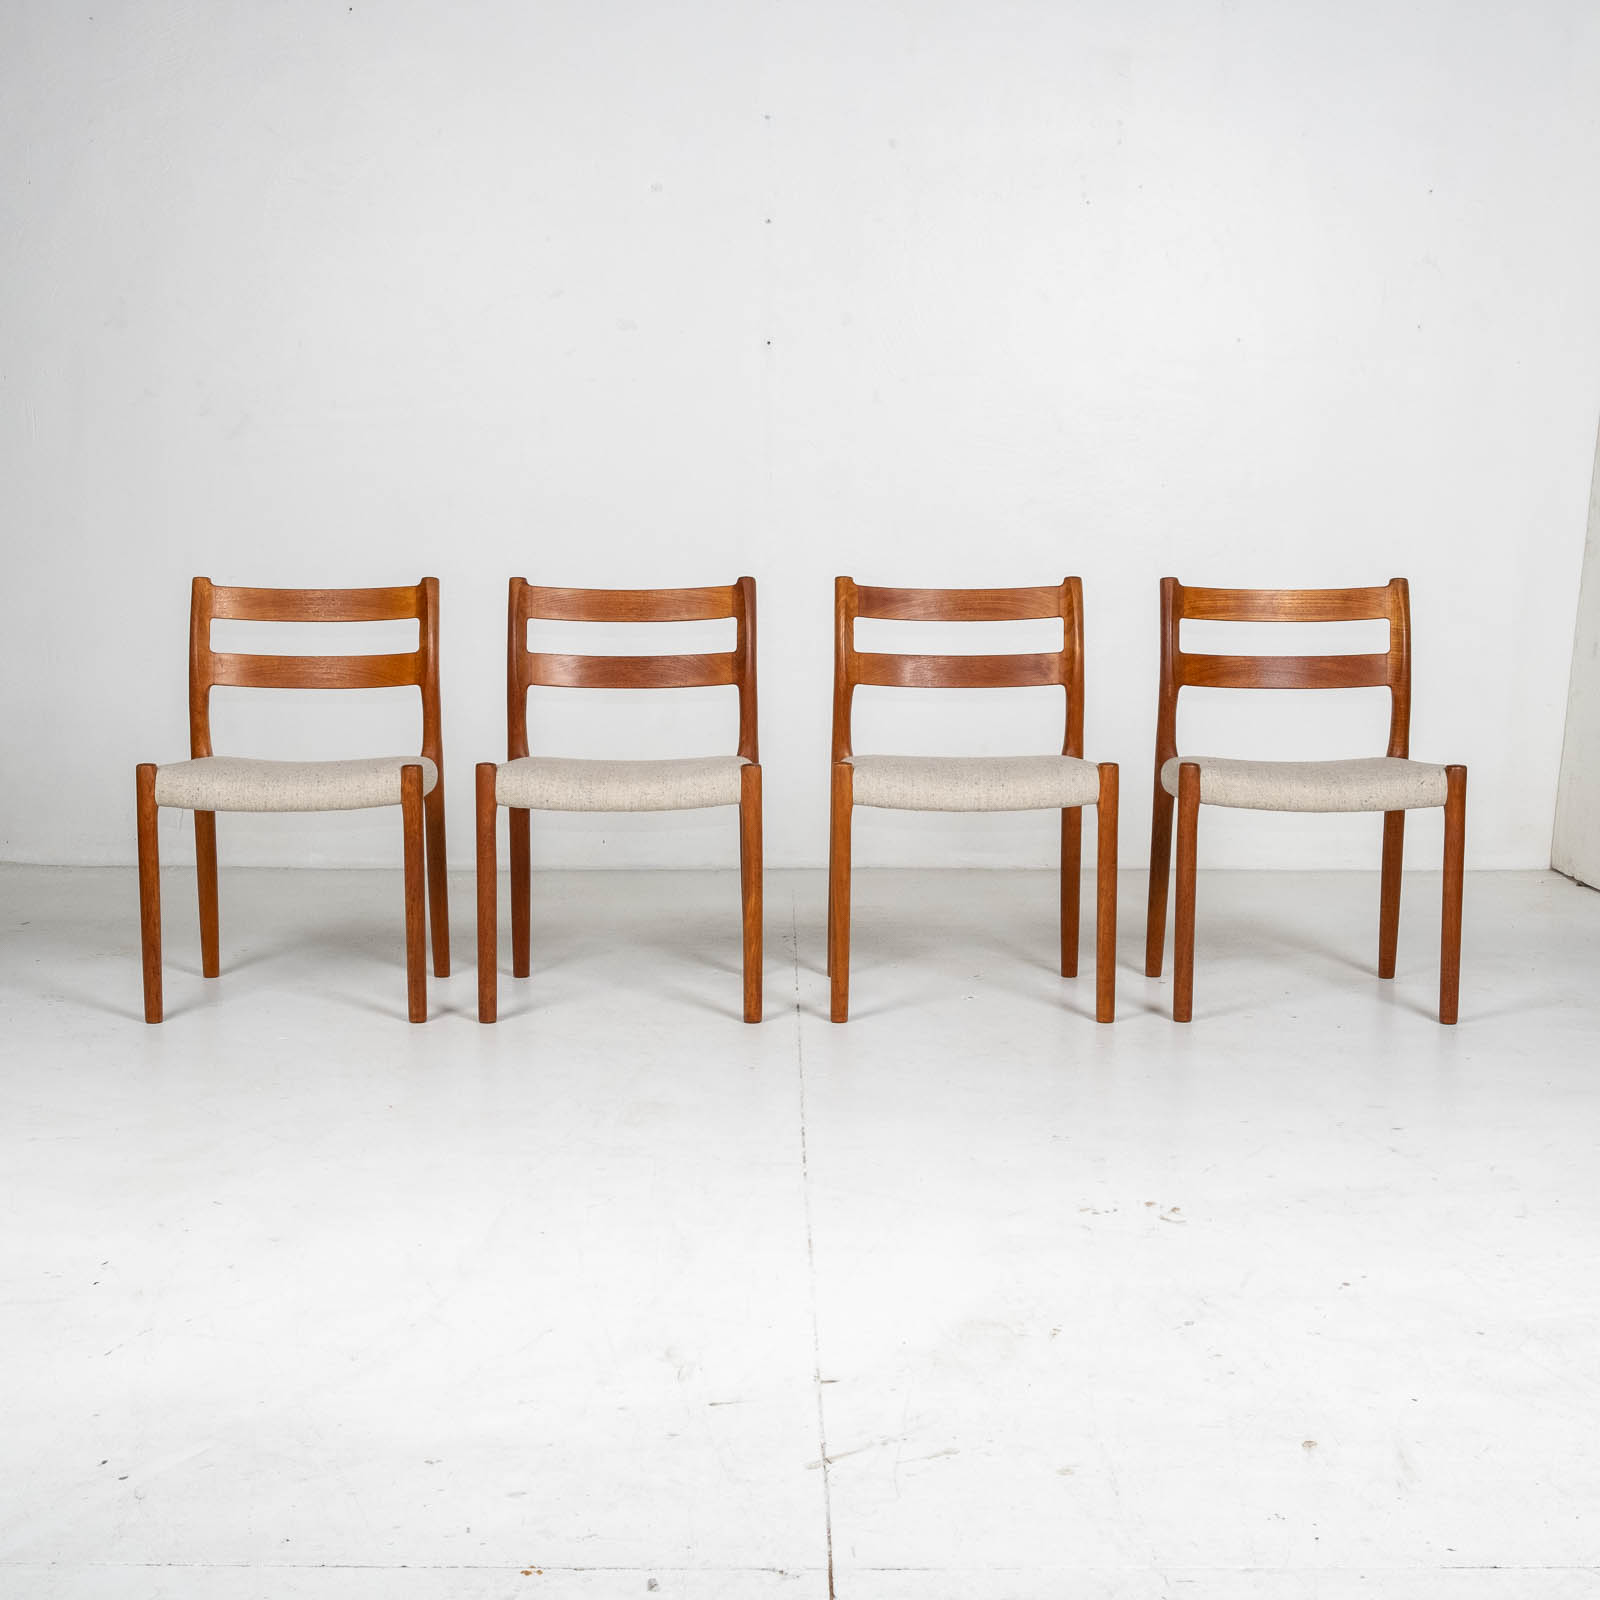 Set Of Four Ladder Back Dining Chairs By Niels Moller In Teak, 1960s, Denmark1